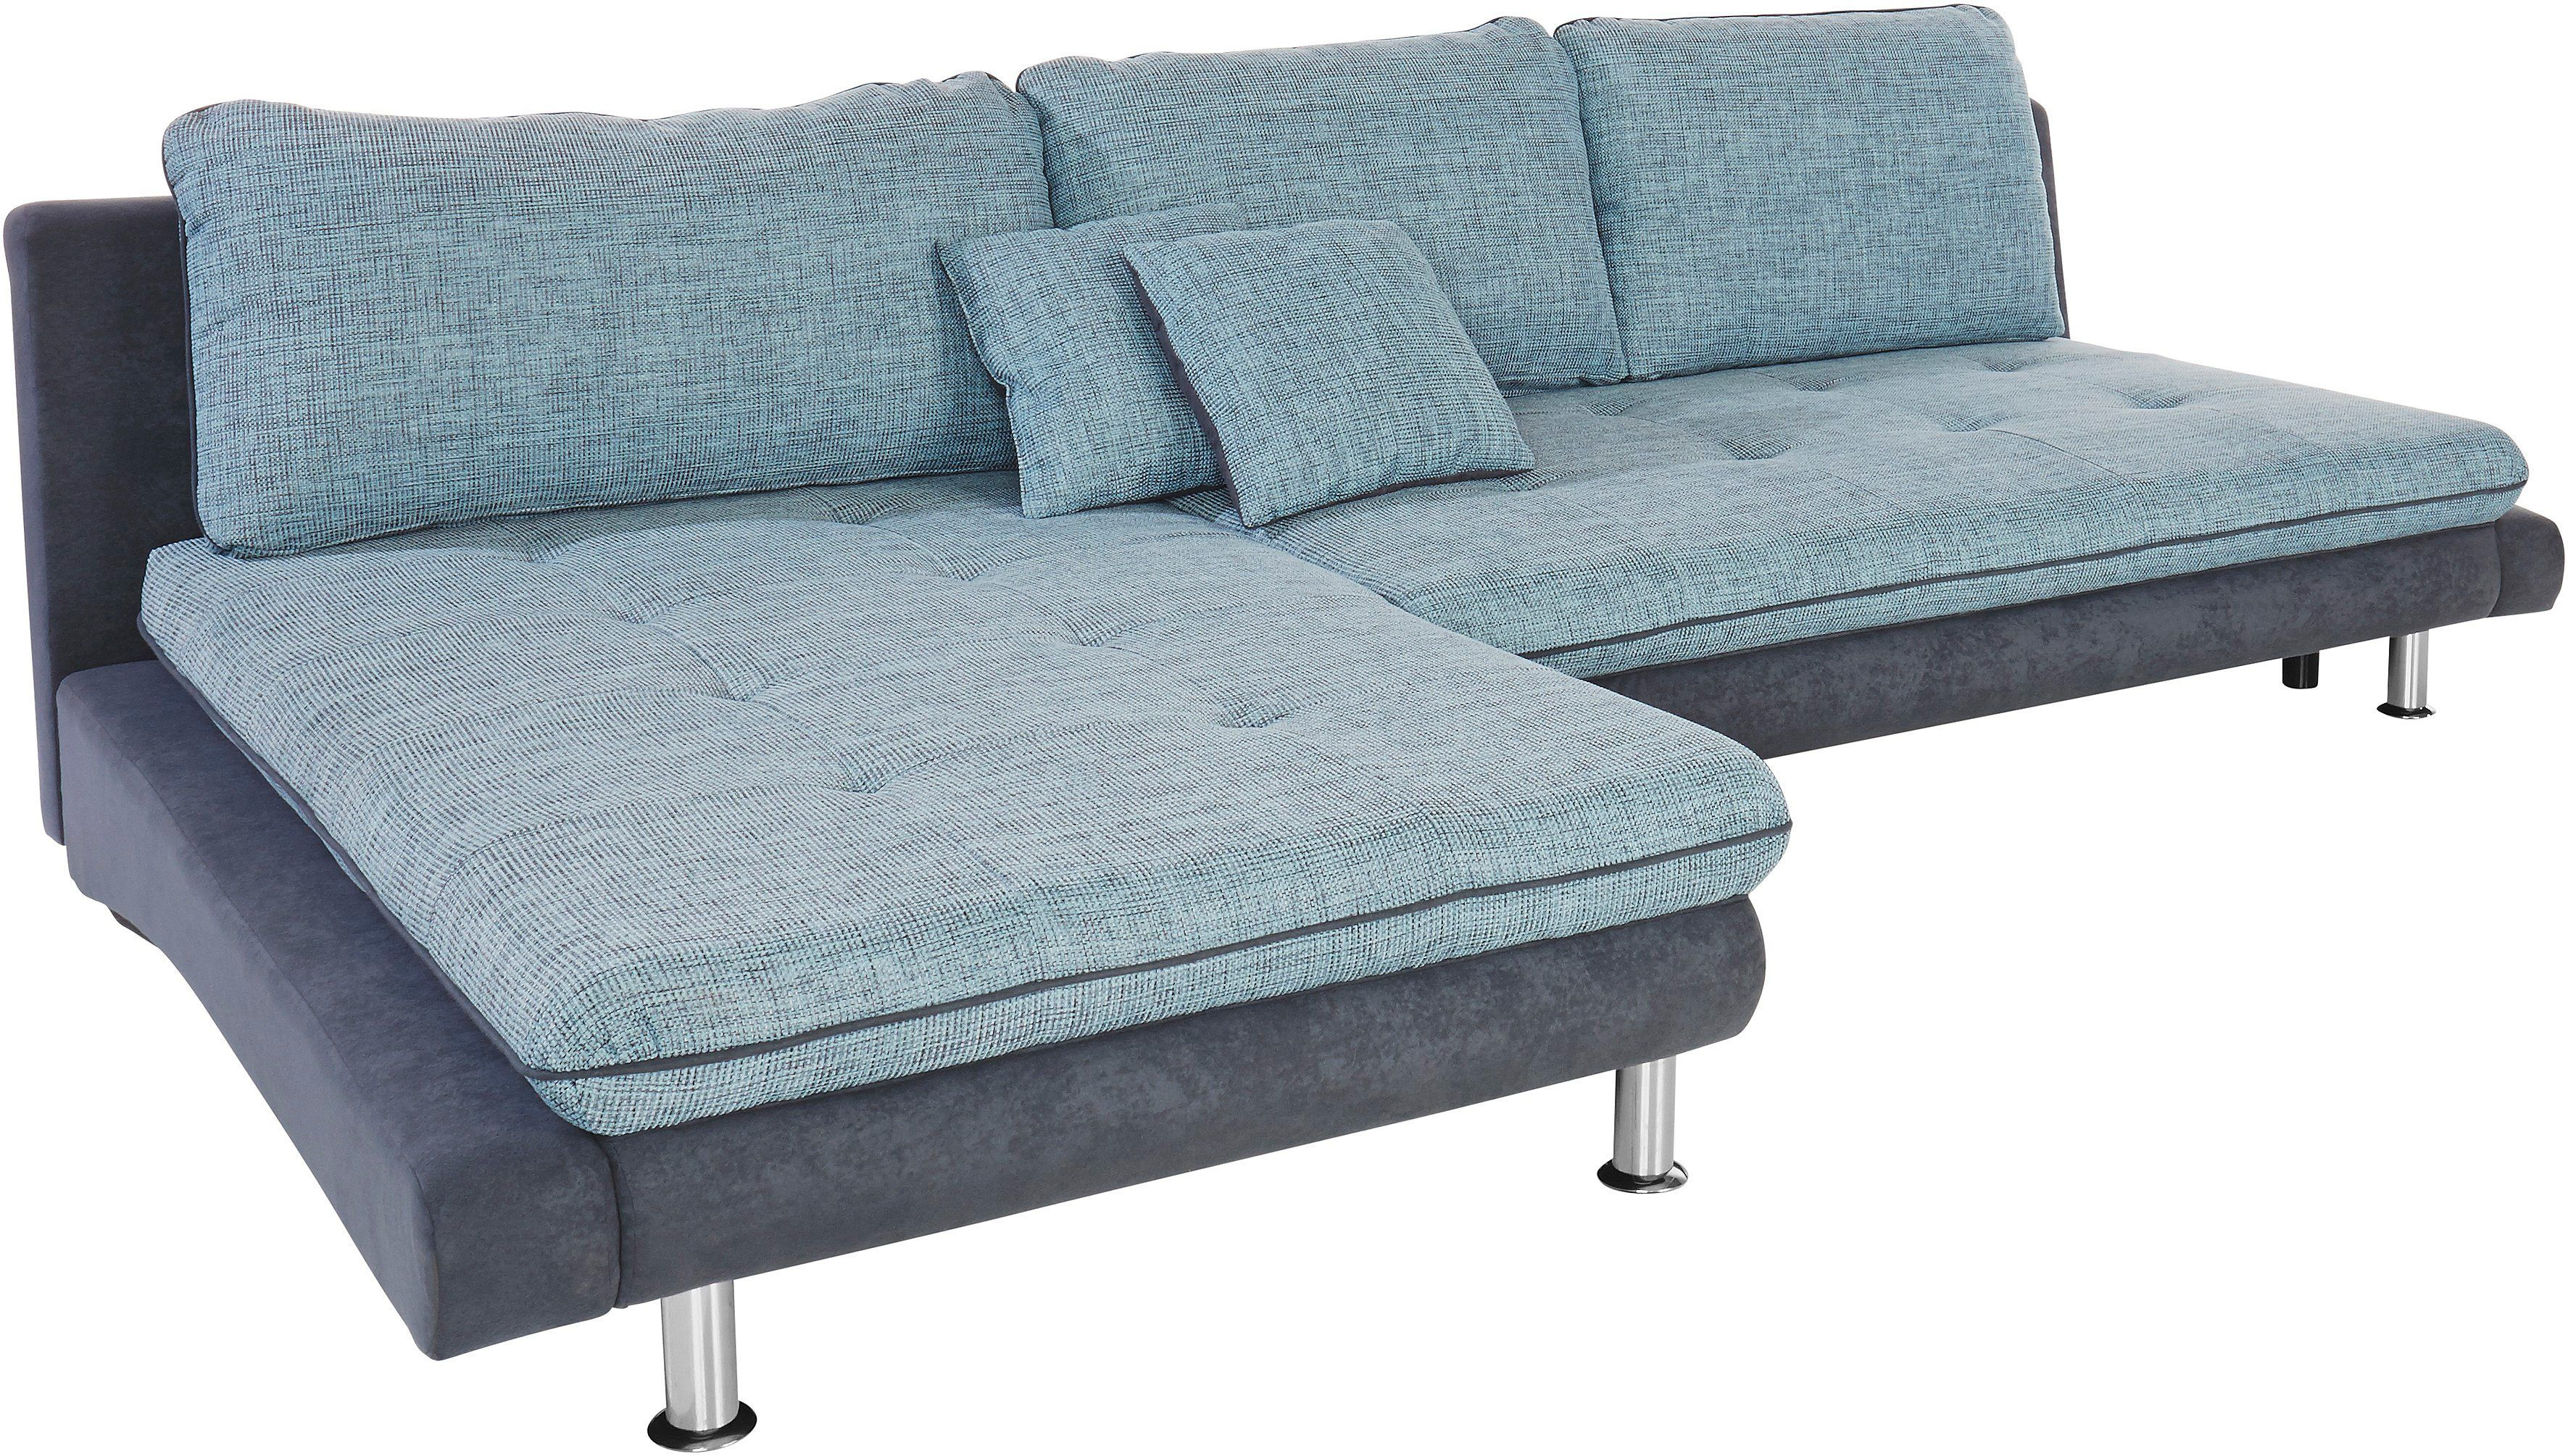 Pin By Ladendirekt On Sofas Couches Couch Furniture Home Decor